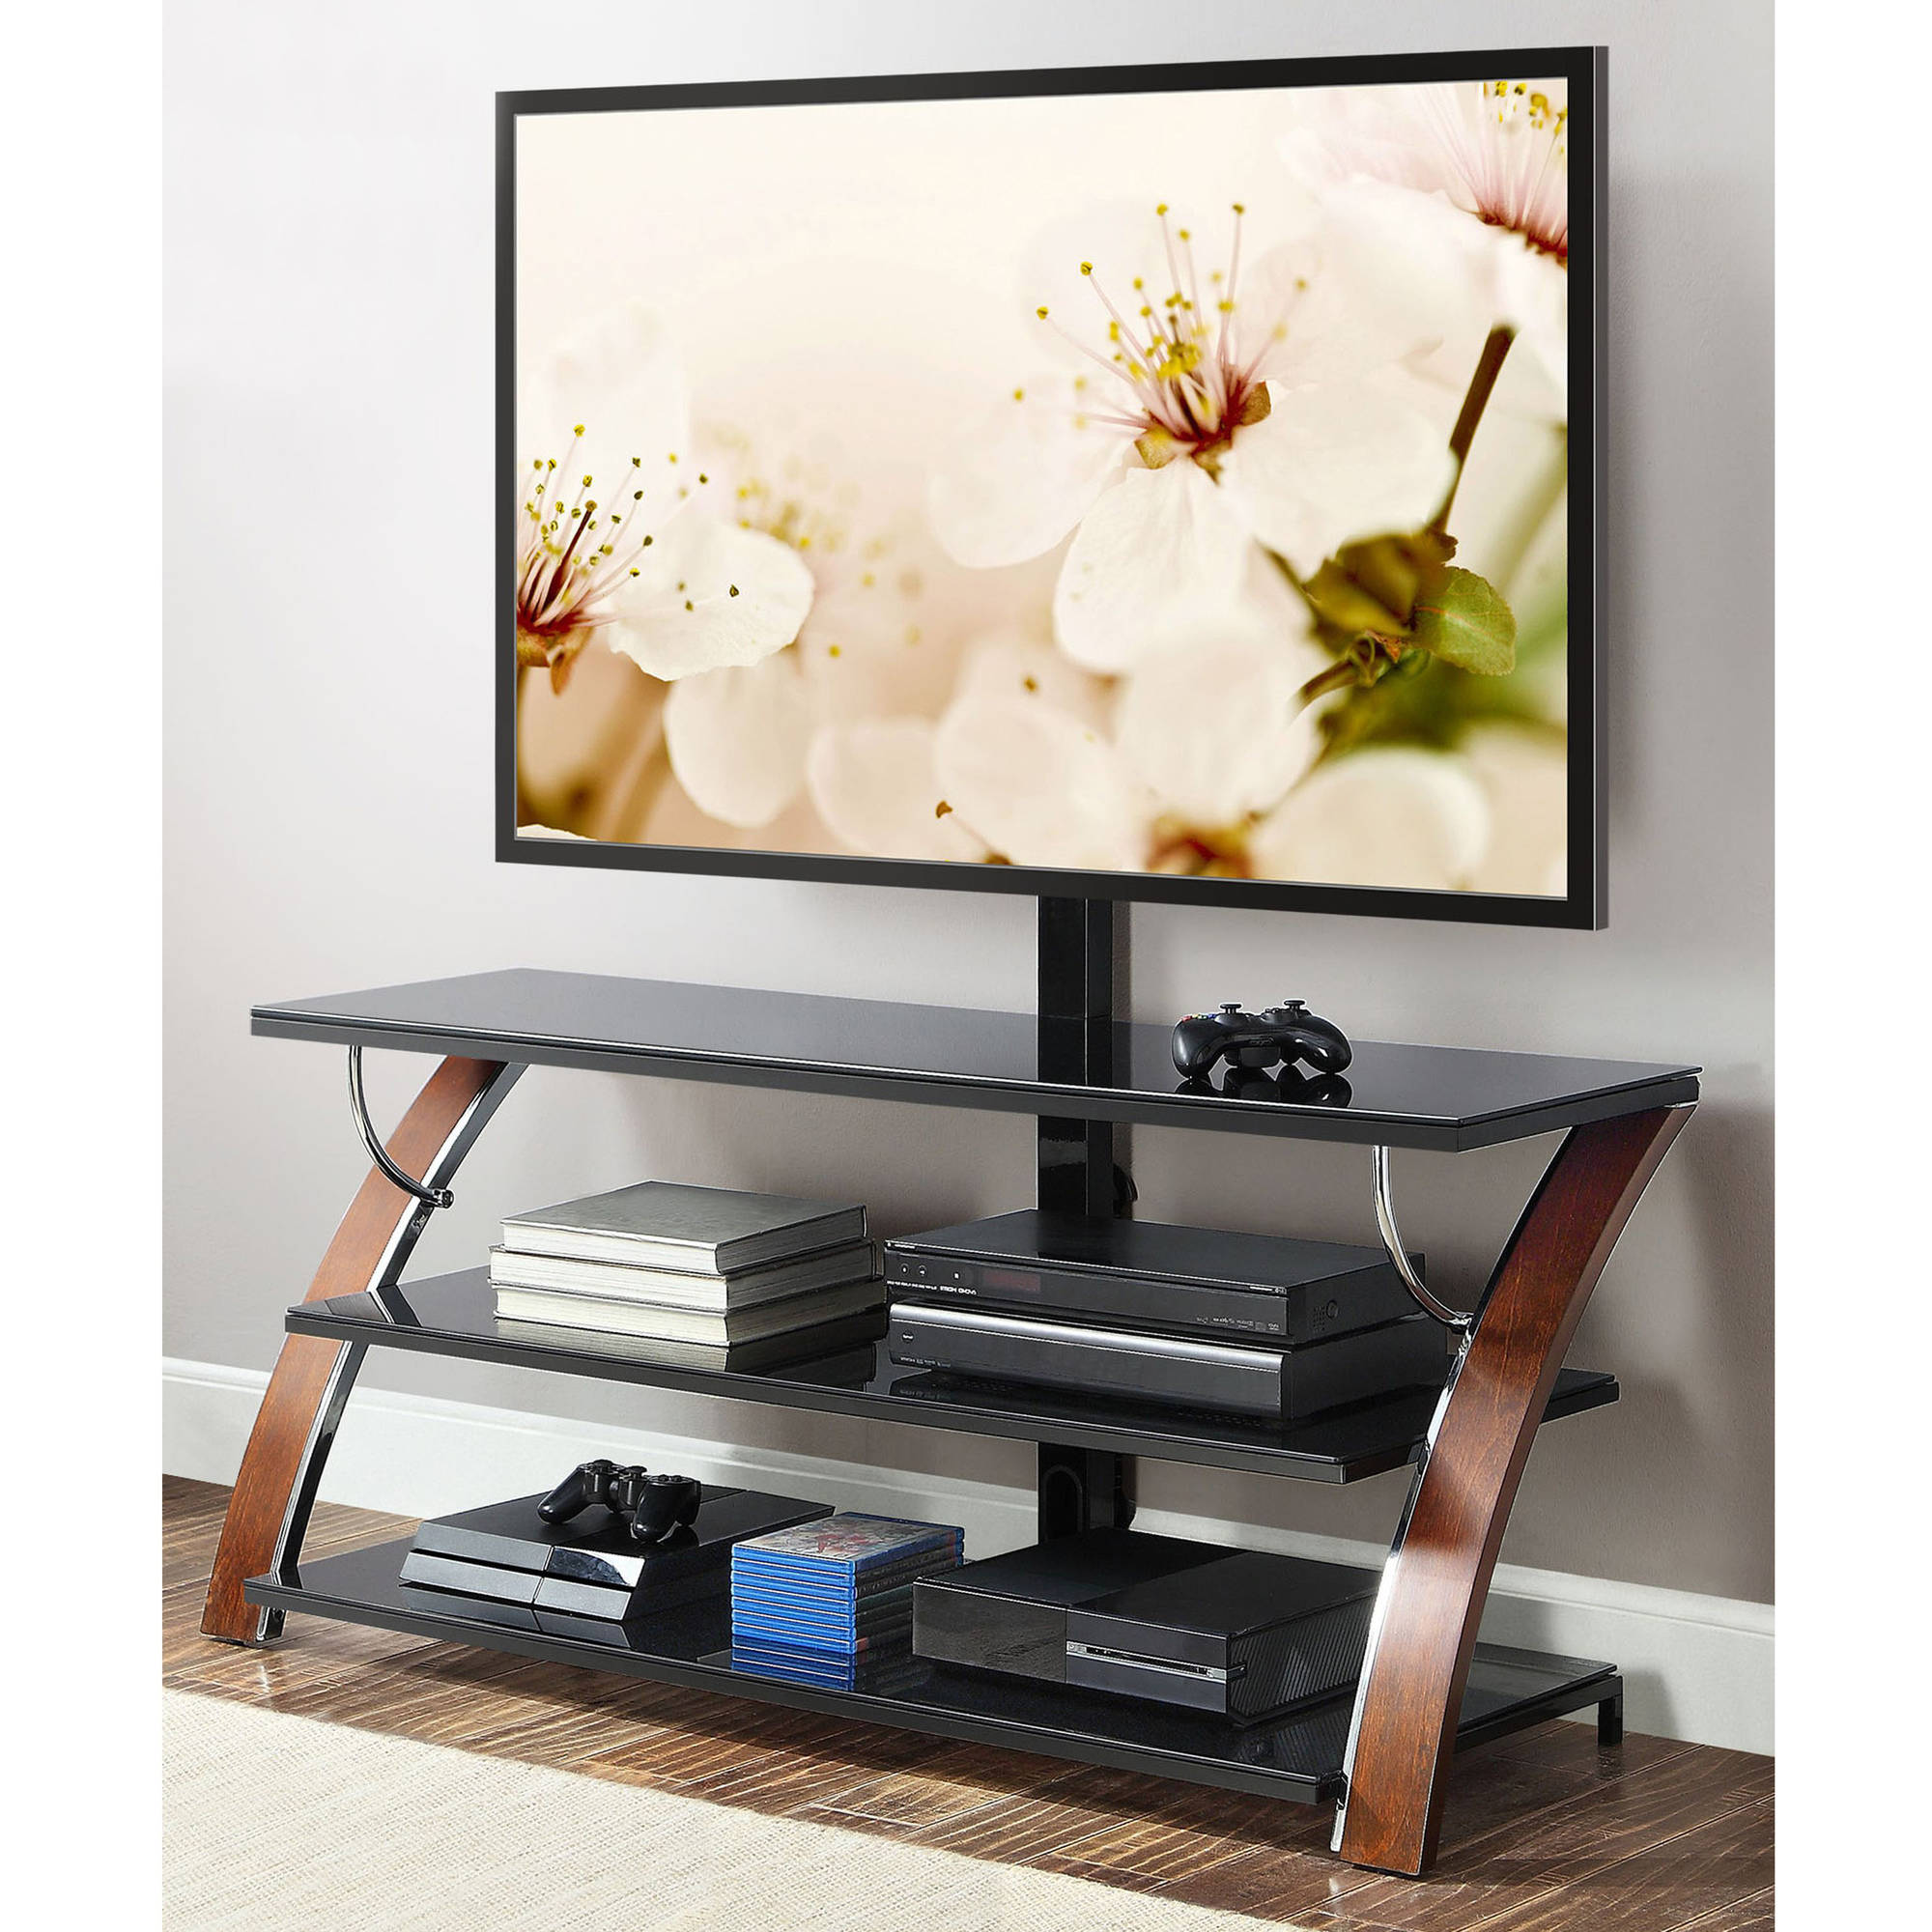 Whalen Brown Cherry 3-in-1 Flat Panel TV Stand for TVs up to 65 by Tanshan Boda Furniture Co.,Ltd